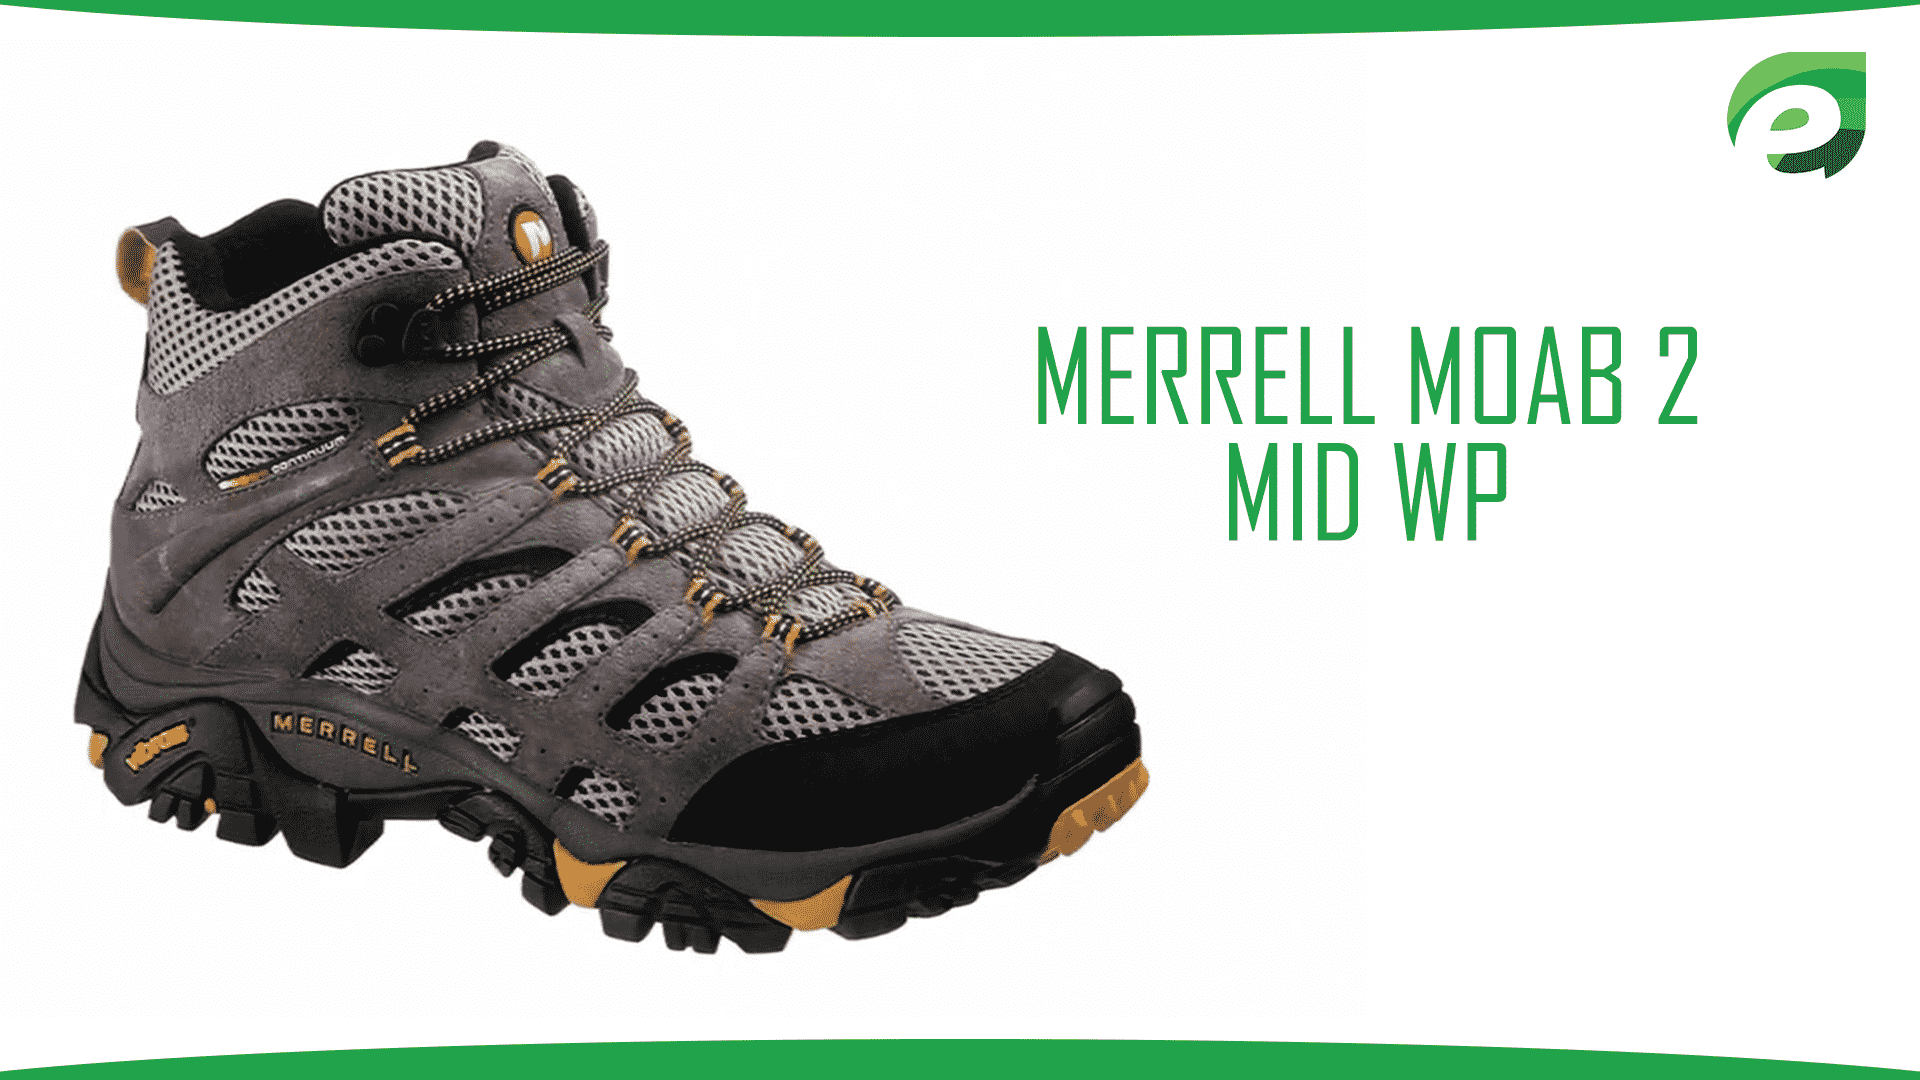 best hiking boots- Merrell Moab 2 mid wp